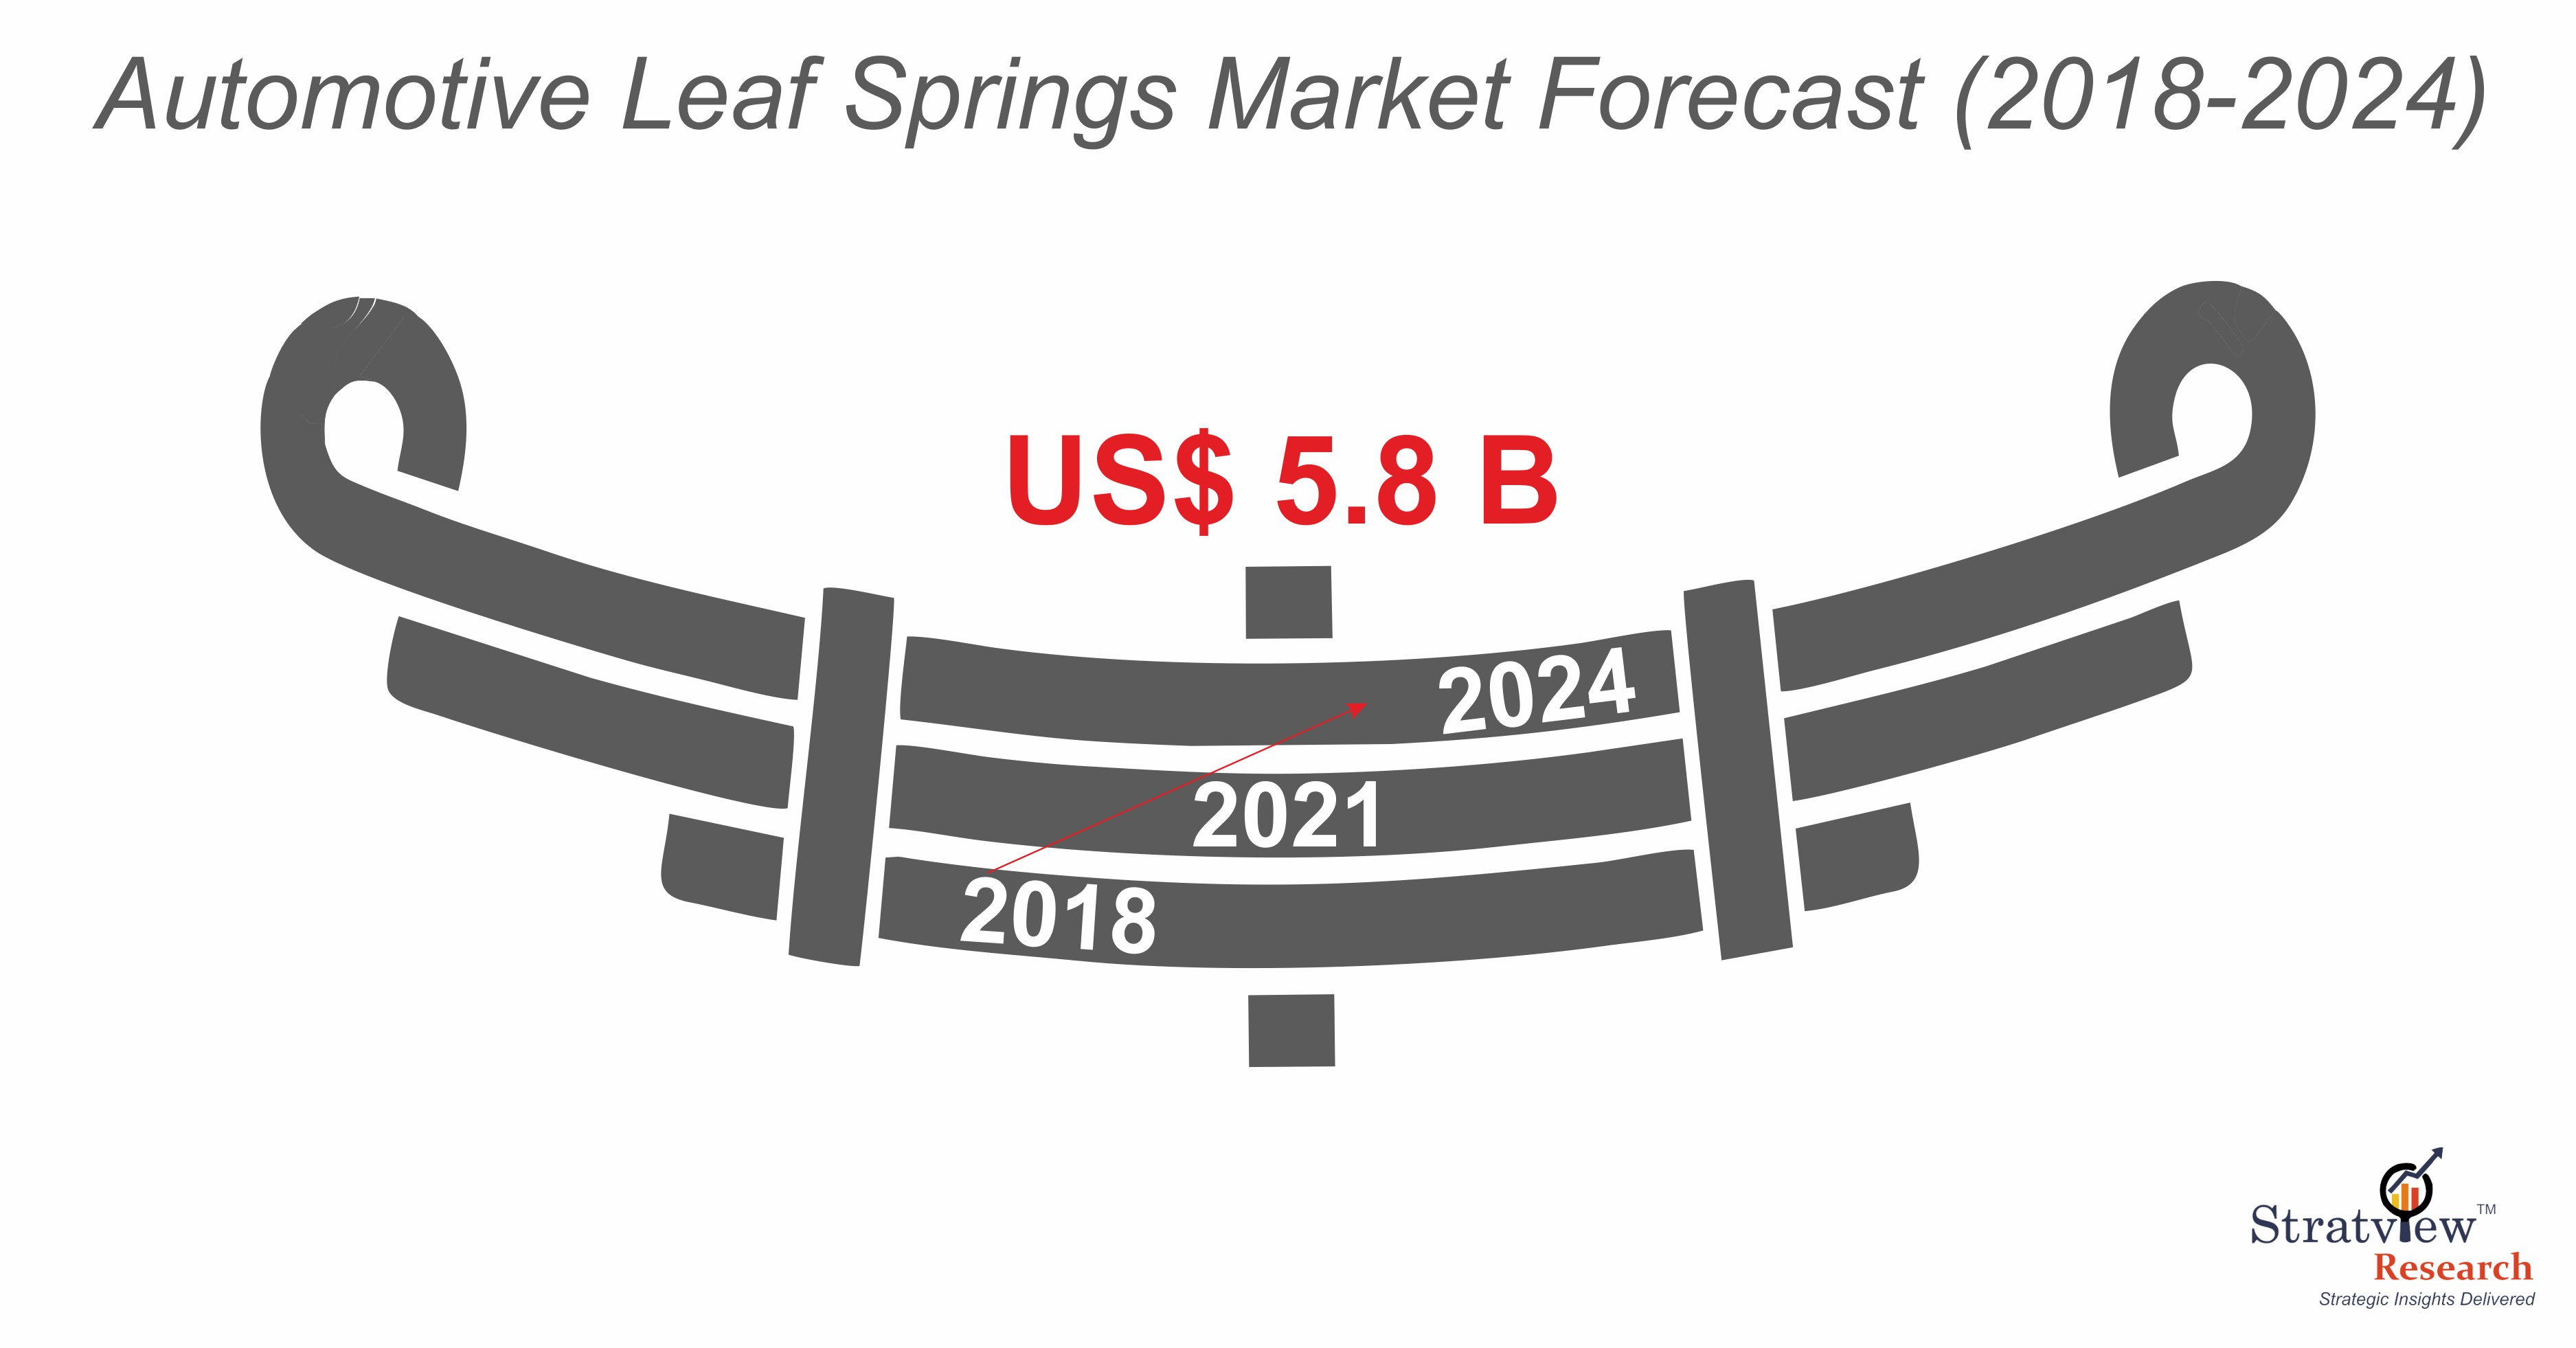 Automotive Leaf Spring Market Forecast.jpg